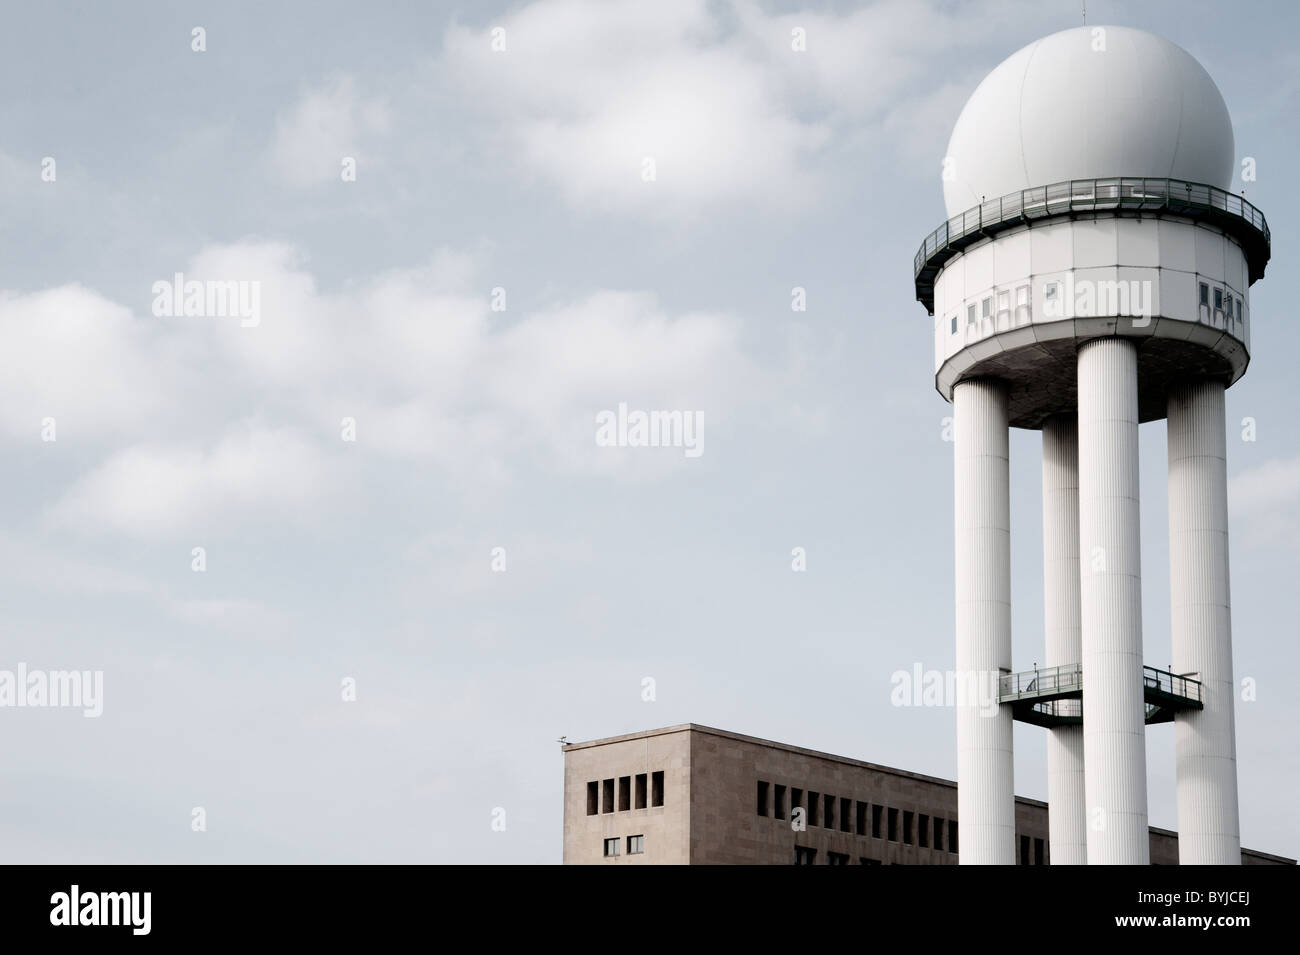 Historic buildings at new city public Tempelhofer Park on site of famous former Tempelhof Airport in Berlin Germany - Stock Image